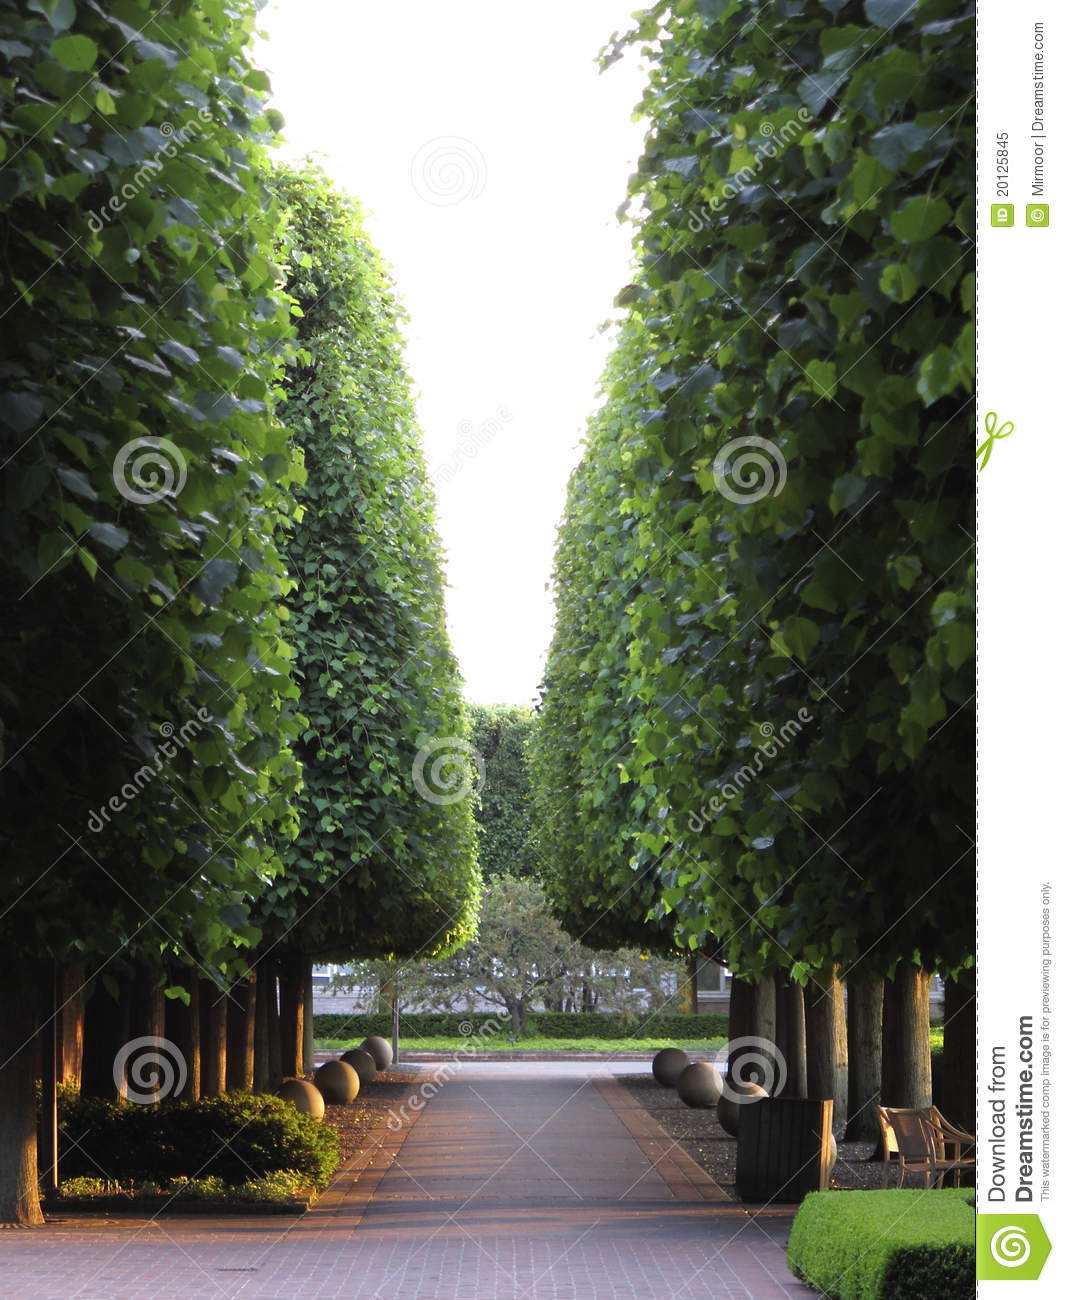 Park Pathway In Botanic Garden Stock Image Image Of Garden Outdoor 20125845